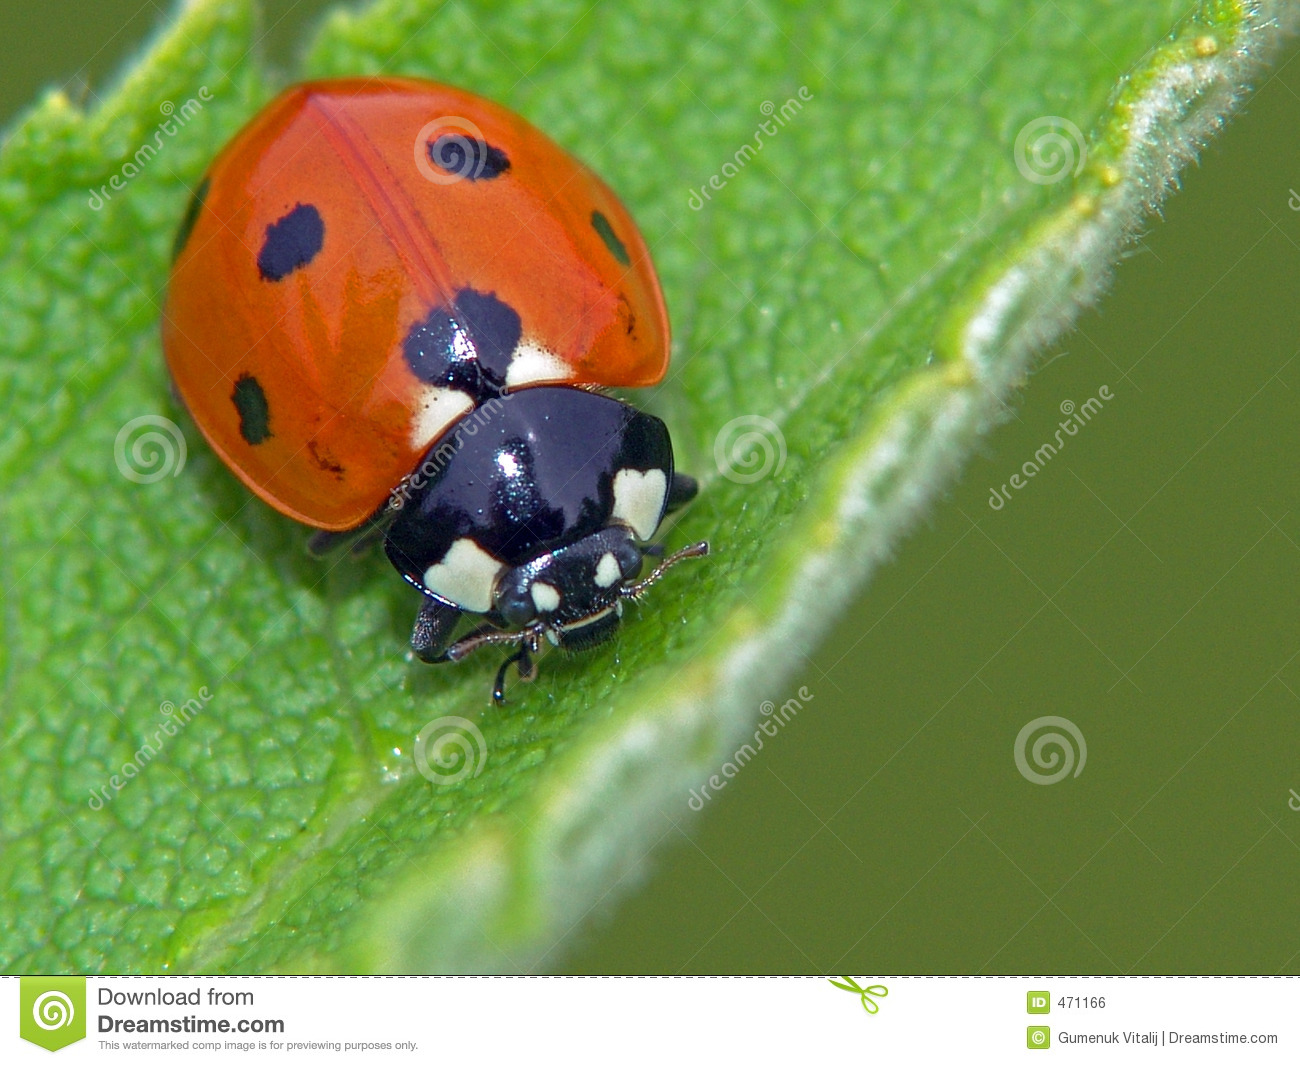 Download The bug. stock photo. Image of field, points, assistant - 471166